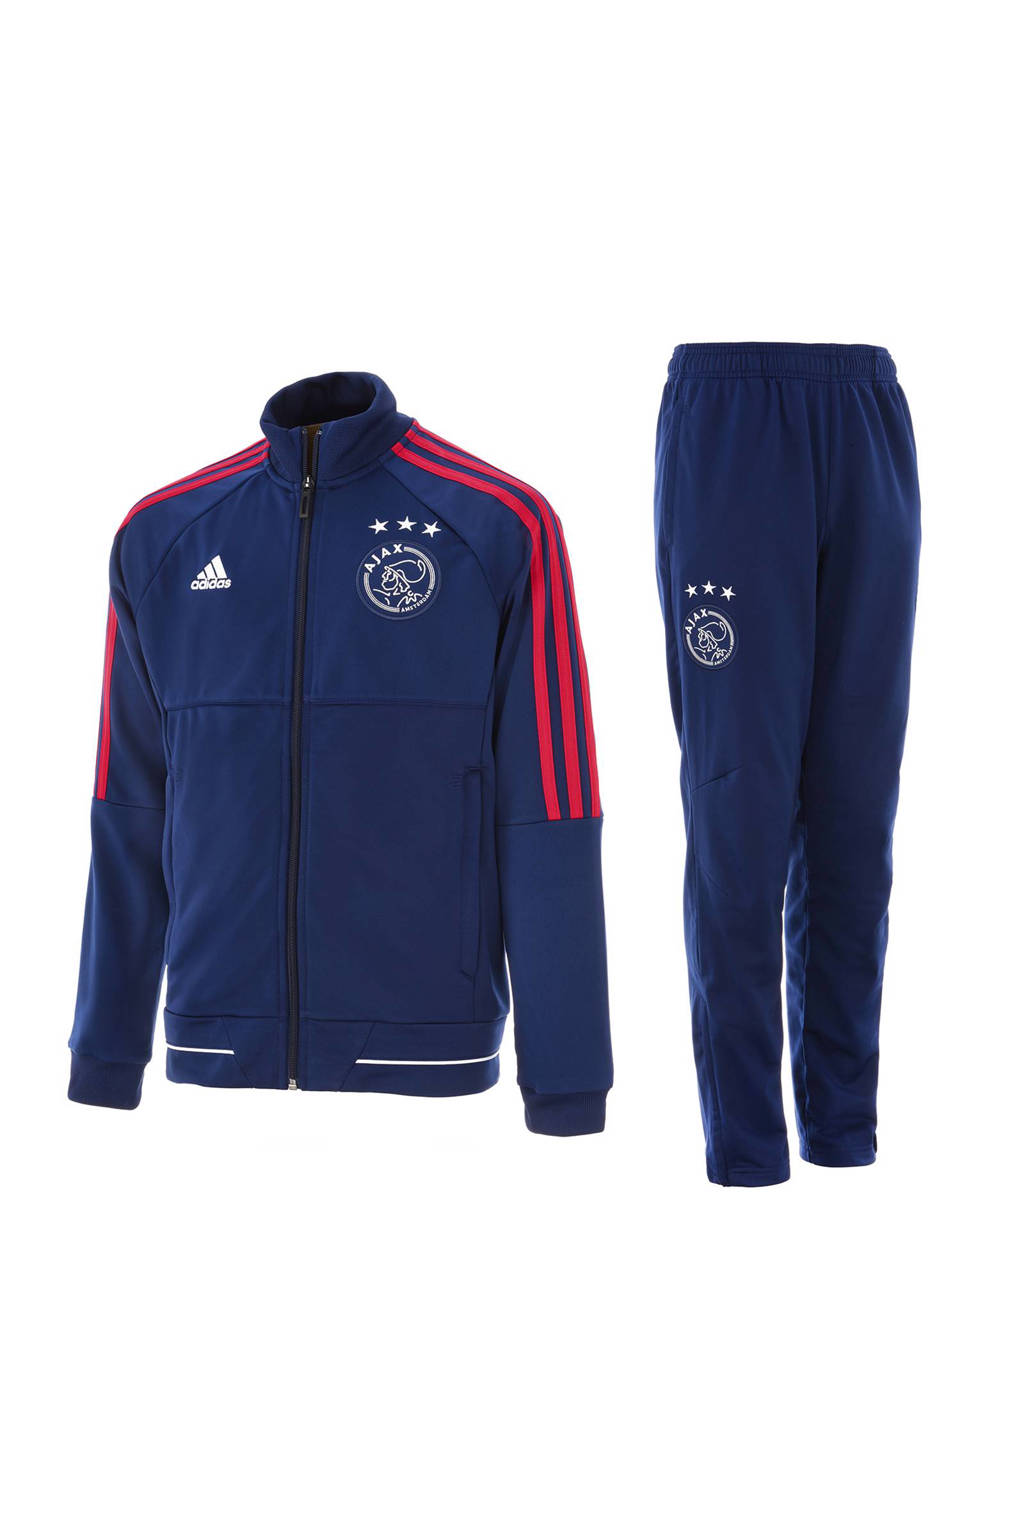 Adidas Performance Adidas Performance Junior Ajax Trainingspak Wehkamp